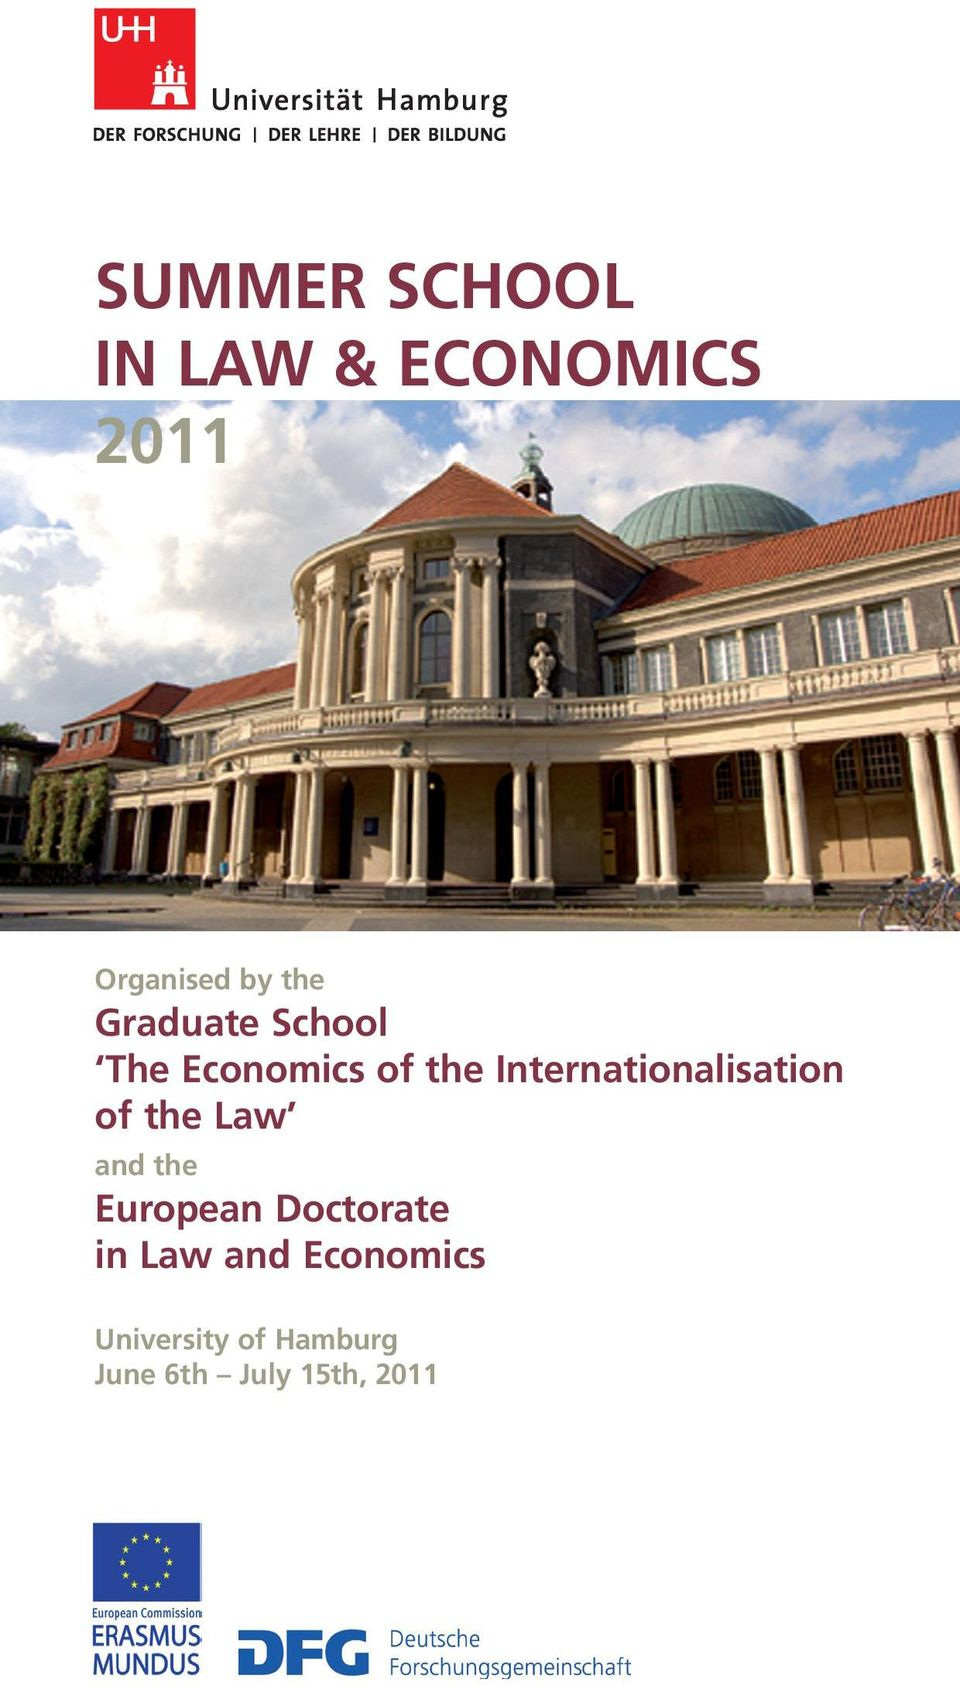 Internationalisation of the Law and the European